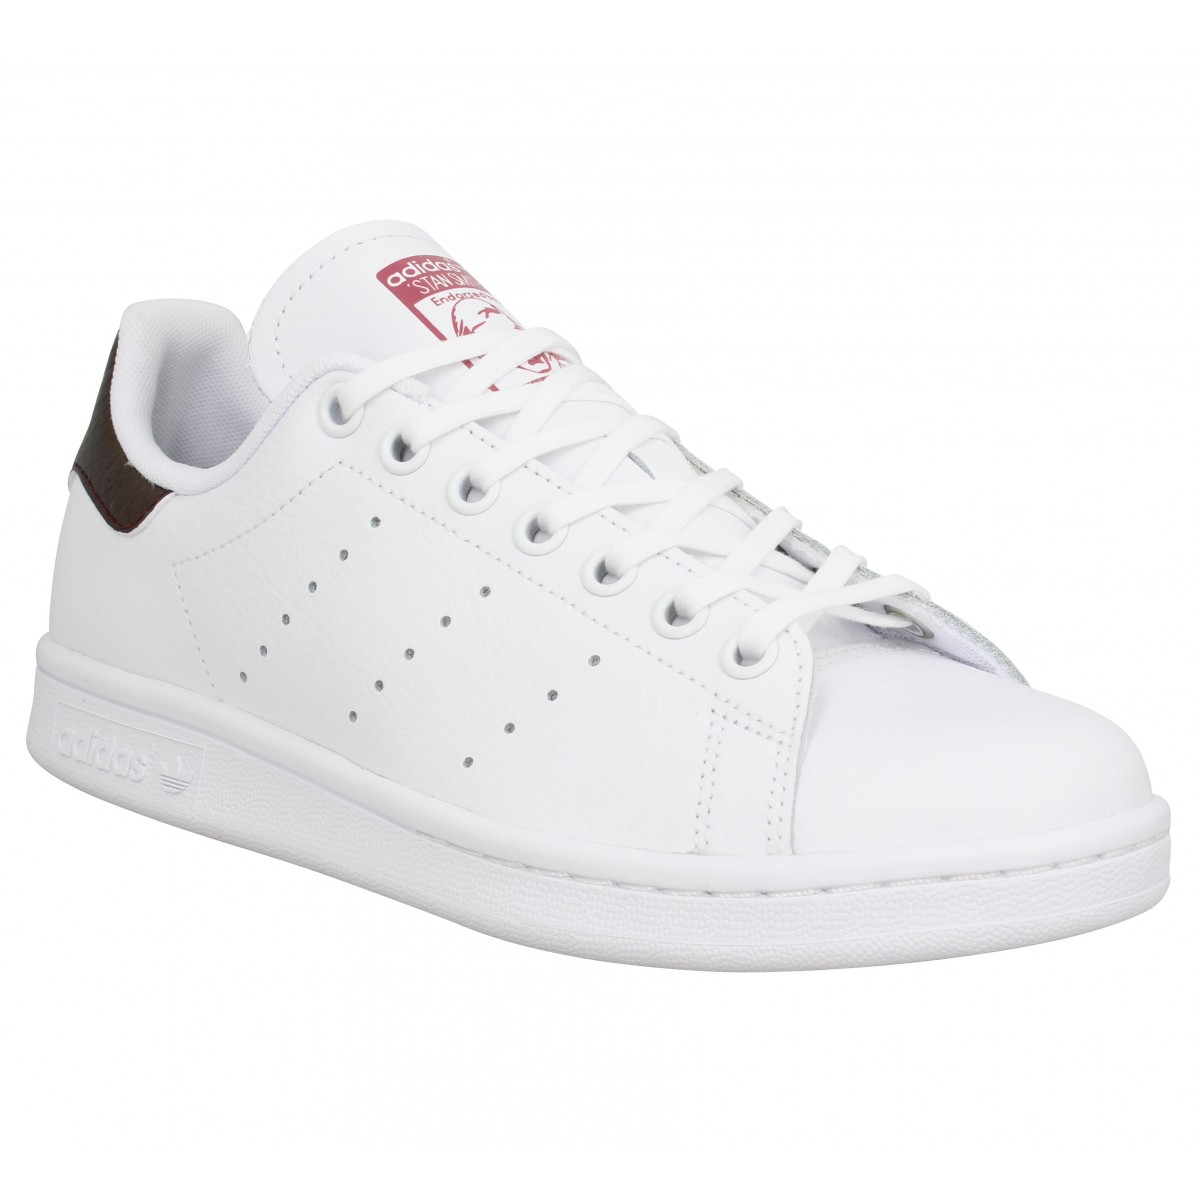 adidas stan smith velour femme allow project.eu